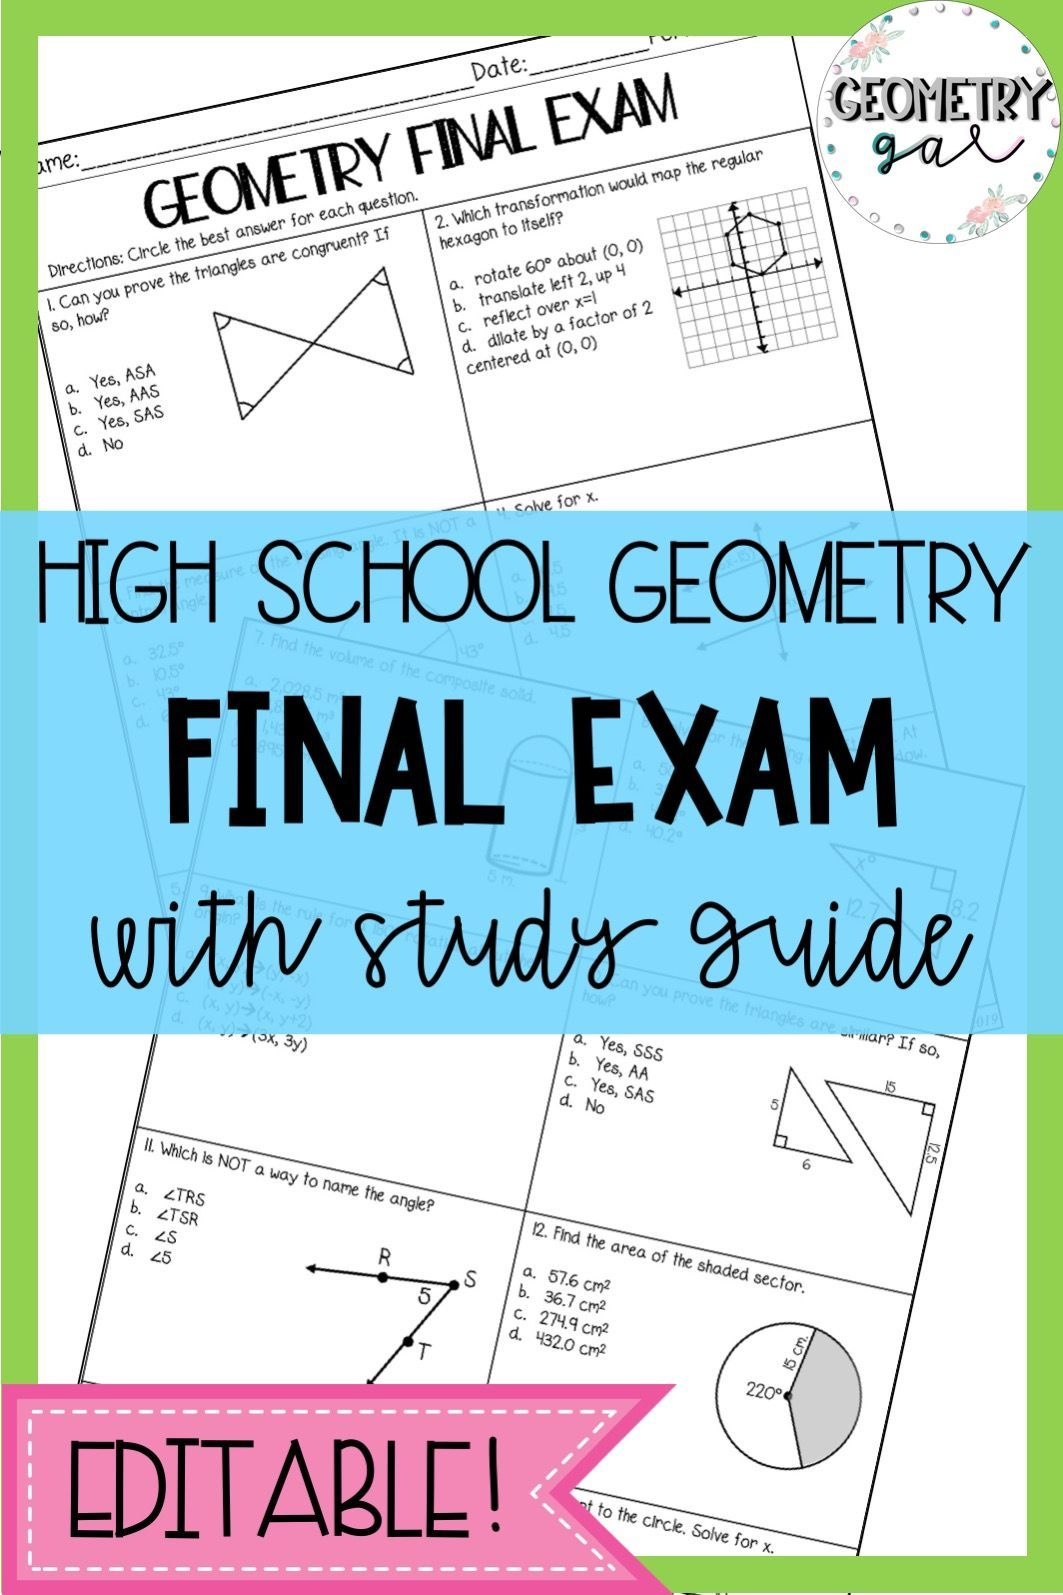 High School Geometry Final Exam And Study Guide These Are Editable To Fit Your Needs They A Geometry High School Teaching Geometry High School Math Classroom